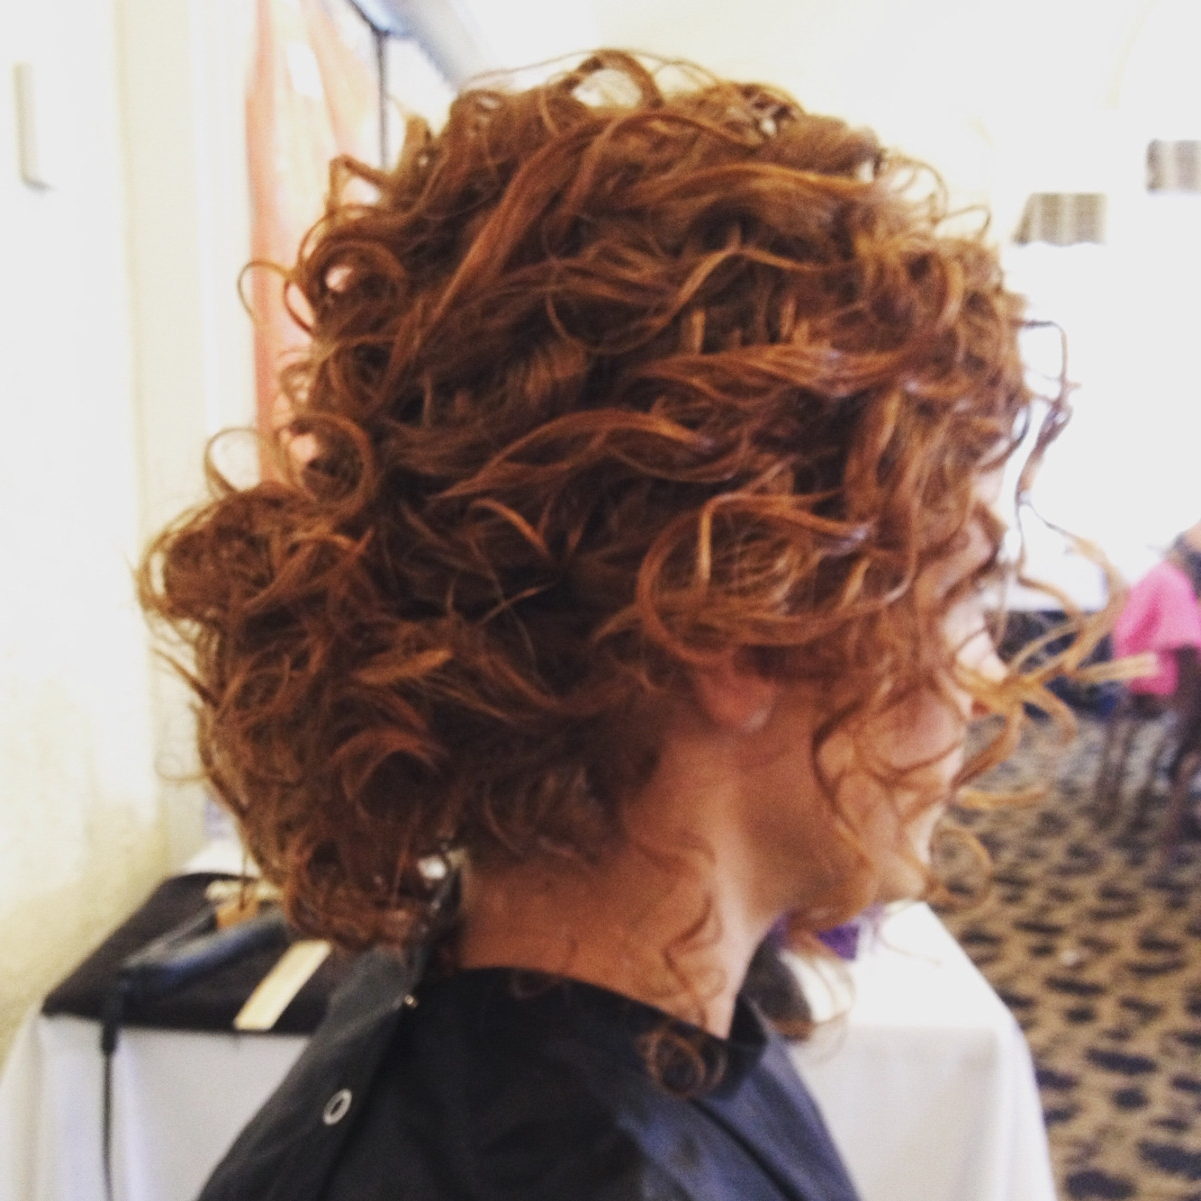 Cute Hairstyles : Top Curly Hair Updos On Pinterest On Curly Hair Intended For Quick Updo Hairstyles For Curly Hair (View 8 of 15)